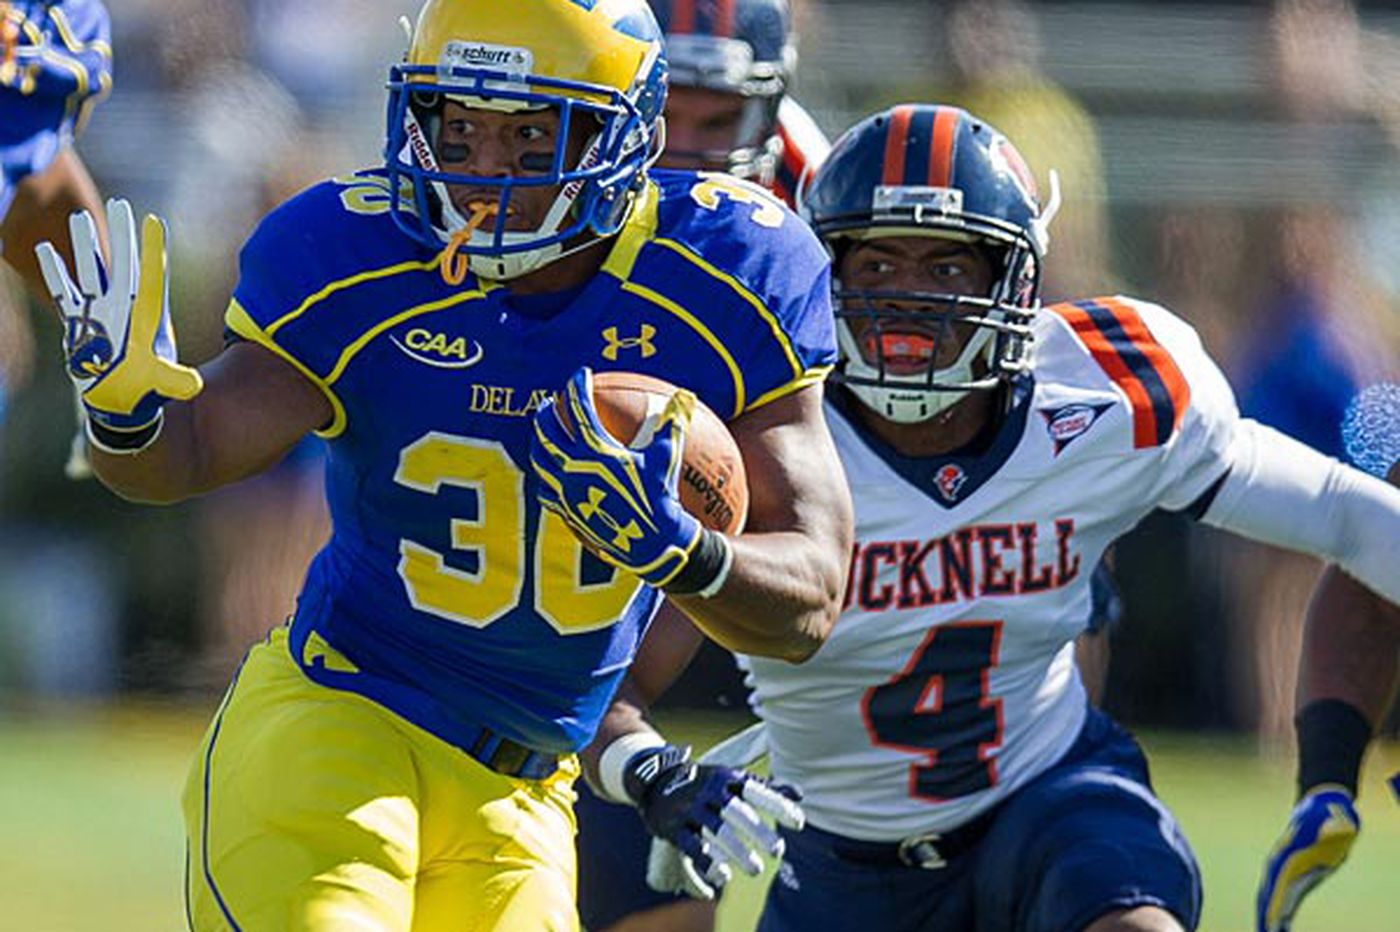 Delaware's Pierce still has his eyes on the prize